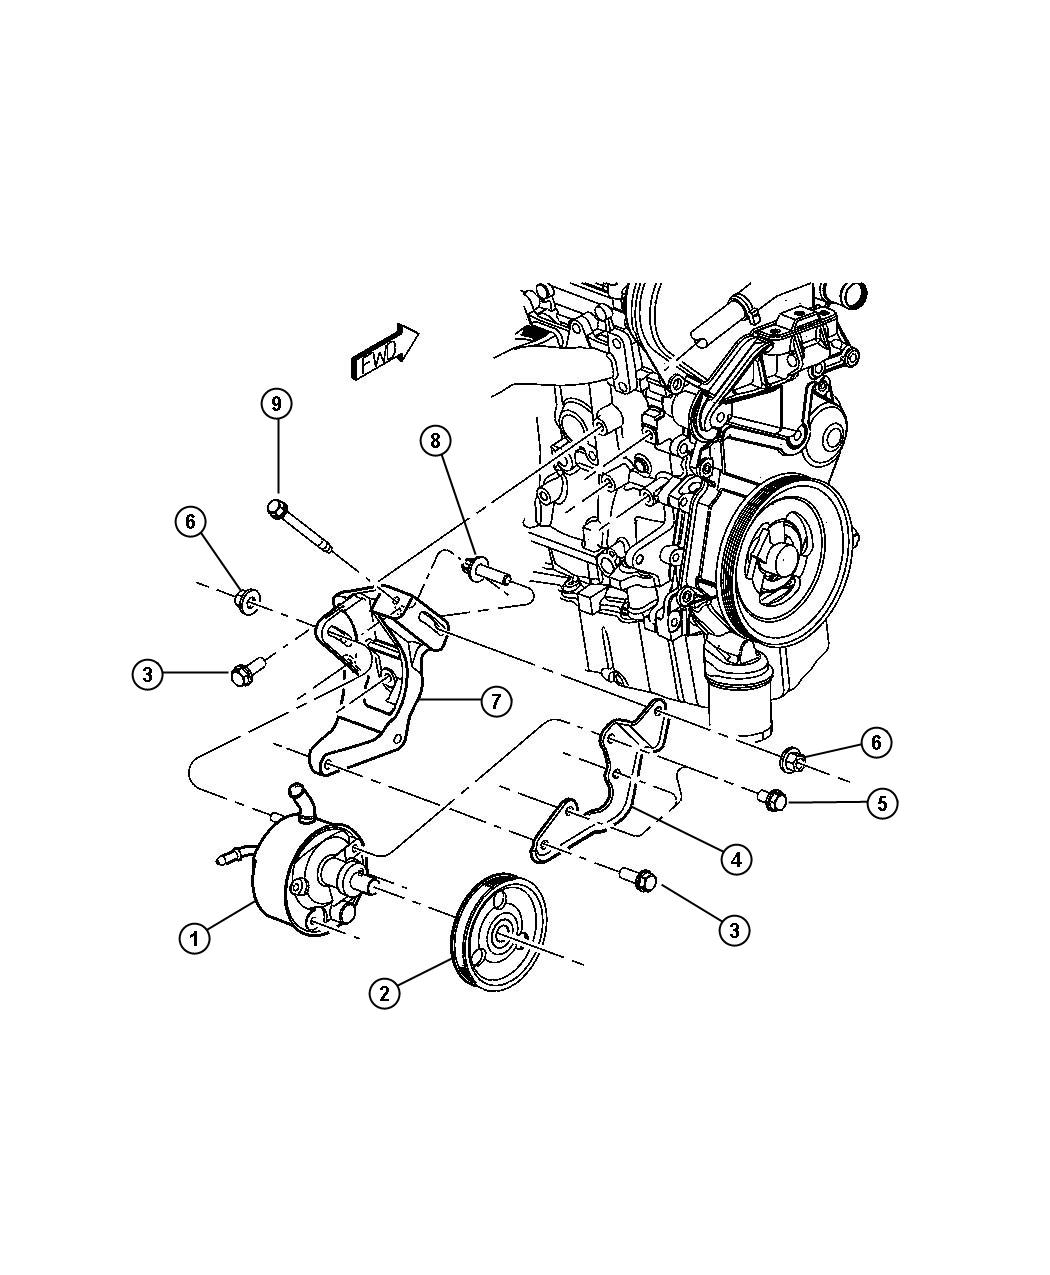 [DIAGRAM] 4runner Power Steering Pump Diagram FULL Version